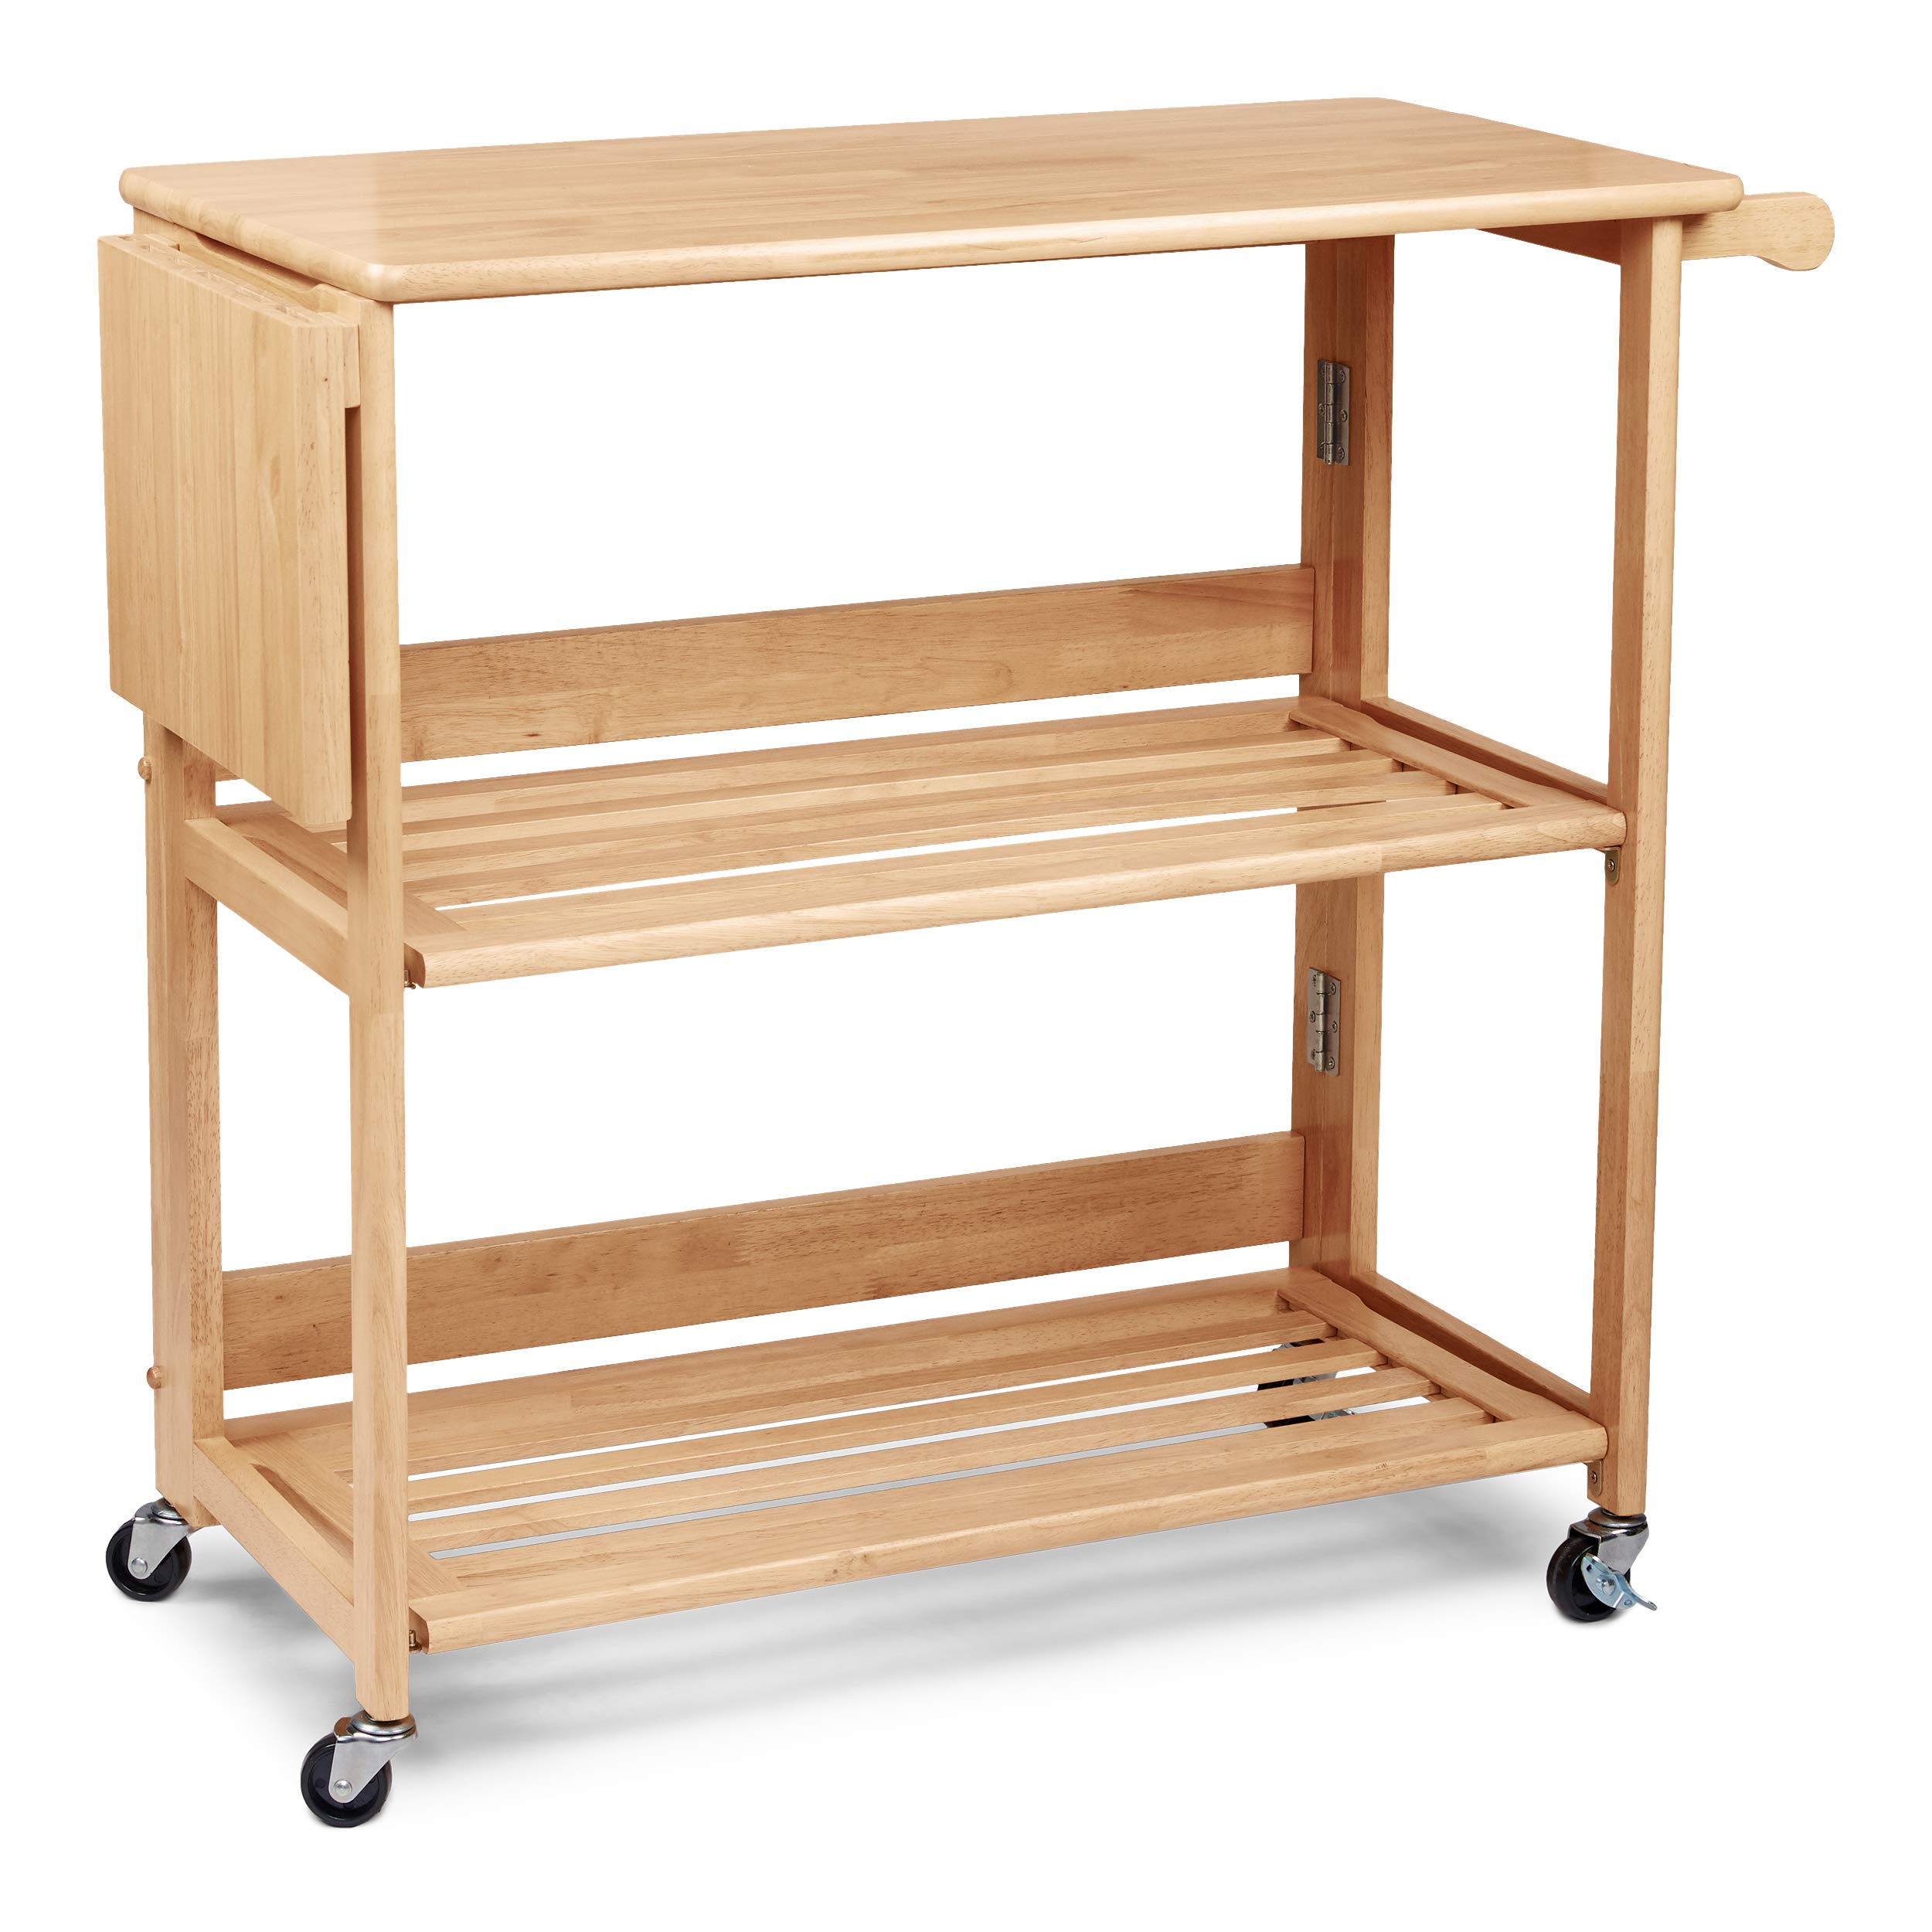 Civet Home TB07-0202-001-SG-A04 Kitchen Cart, Natural